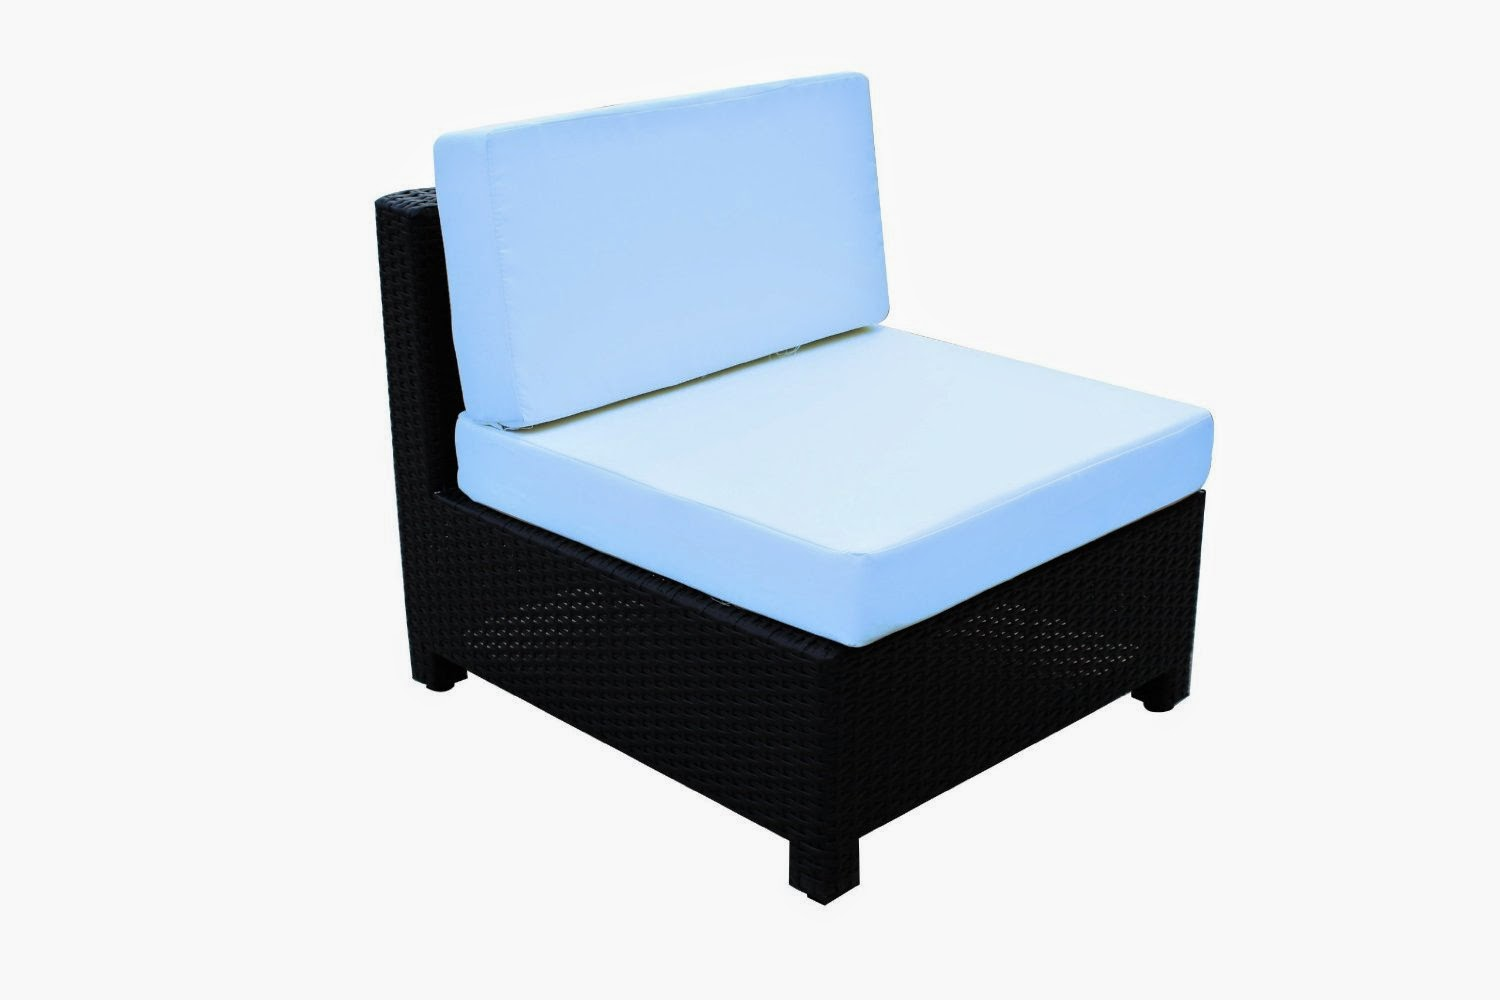 Luxury Wicker Patio Sectional Indoor Outdoor Sofa Furniture set Light Blue